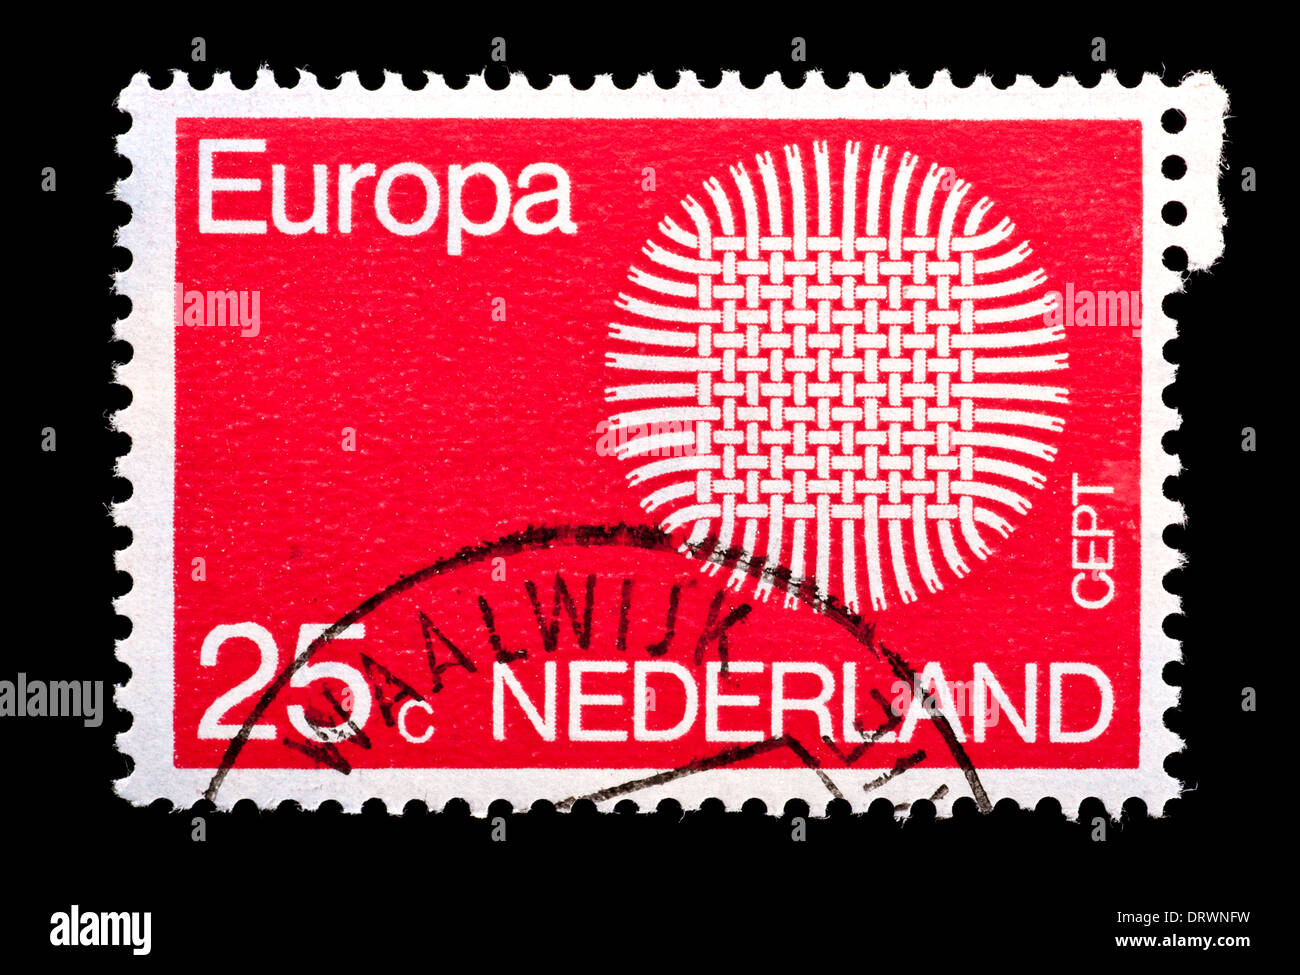 Postage Stamp From The Netherlands Depicting An Interwoven Fabric Stylized Issued As Common Europa